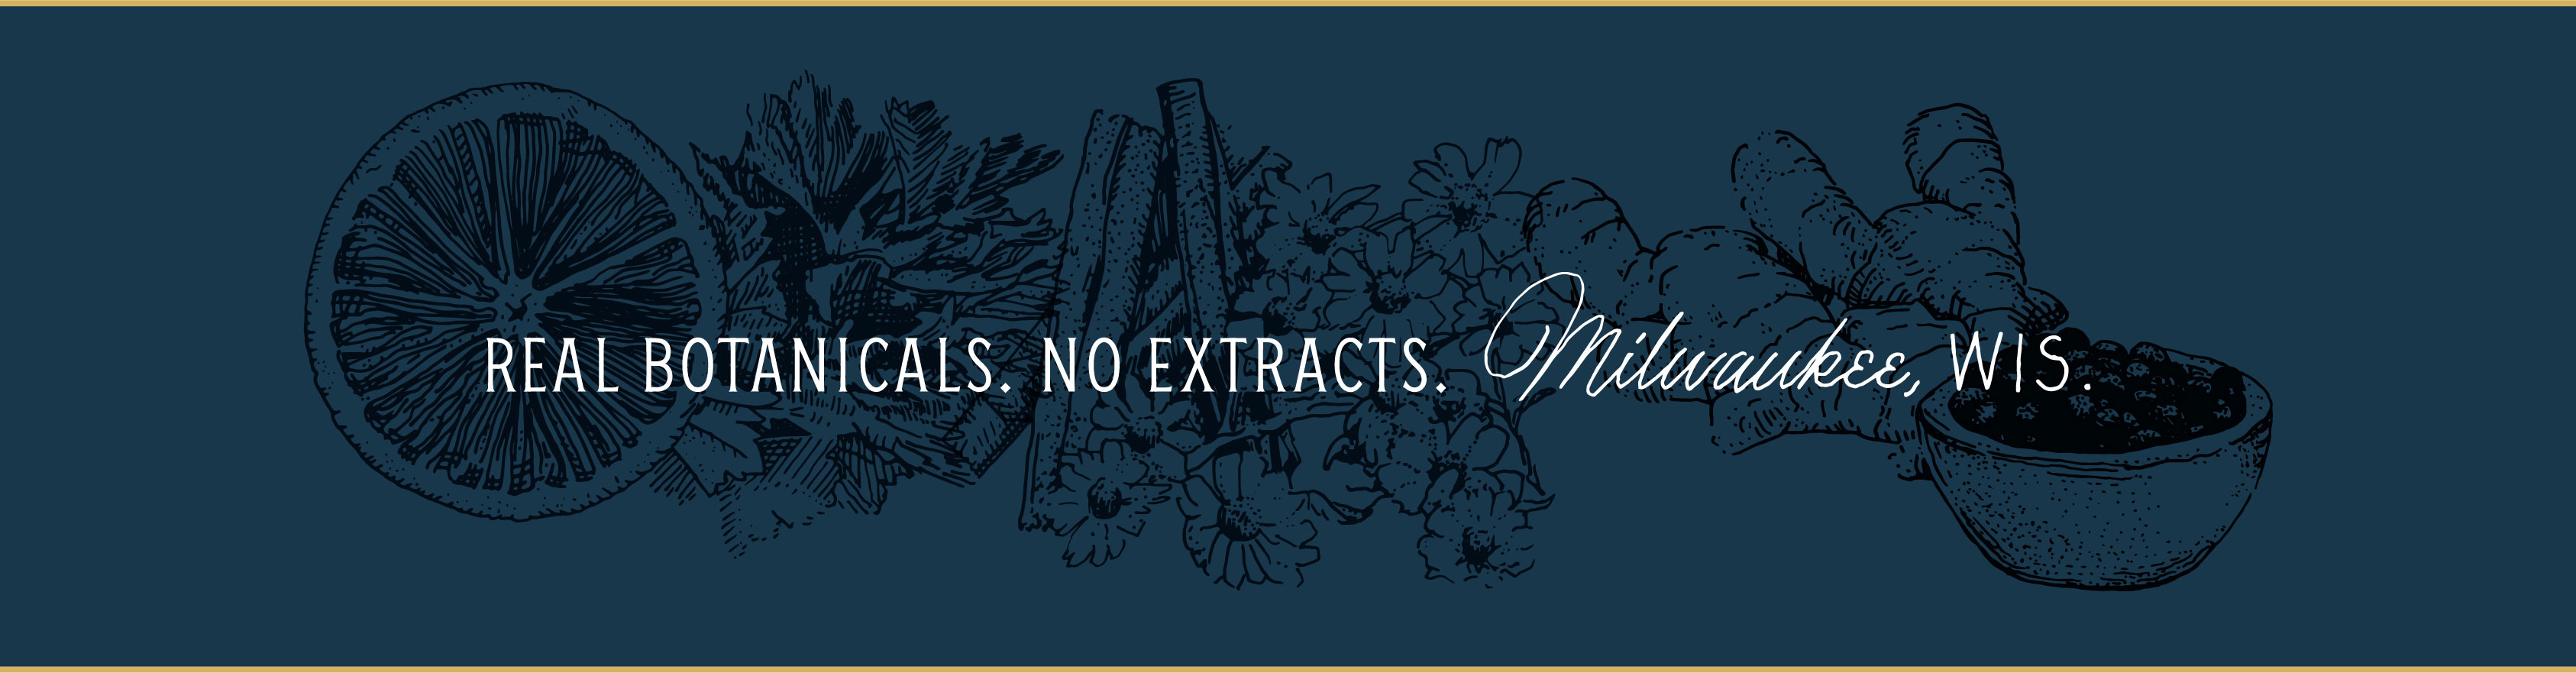 Real Botanicals. No Extracts. Milwaukee, WIS